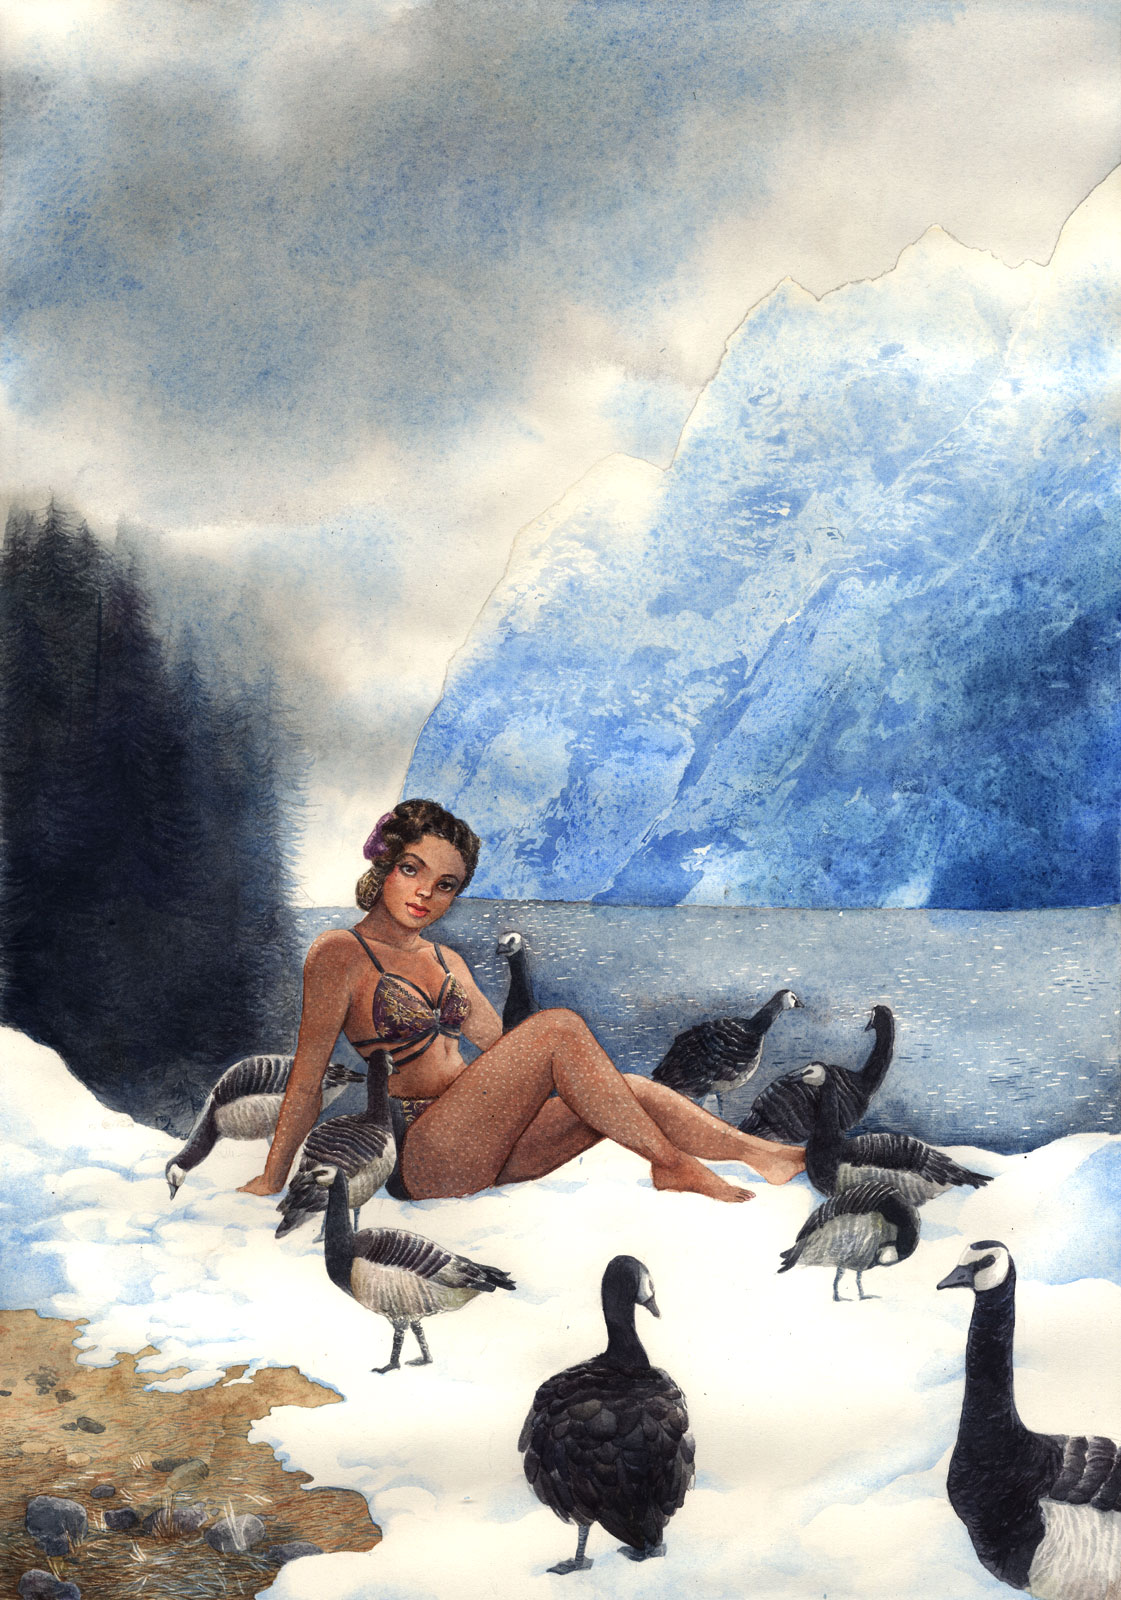 A black pinup posing by a lake in the moutains with realistic goosebumps on her skin and actual gooses frolicking in the snow.